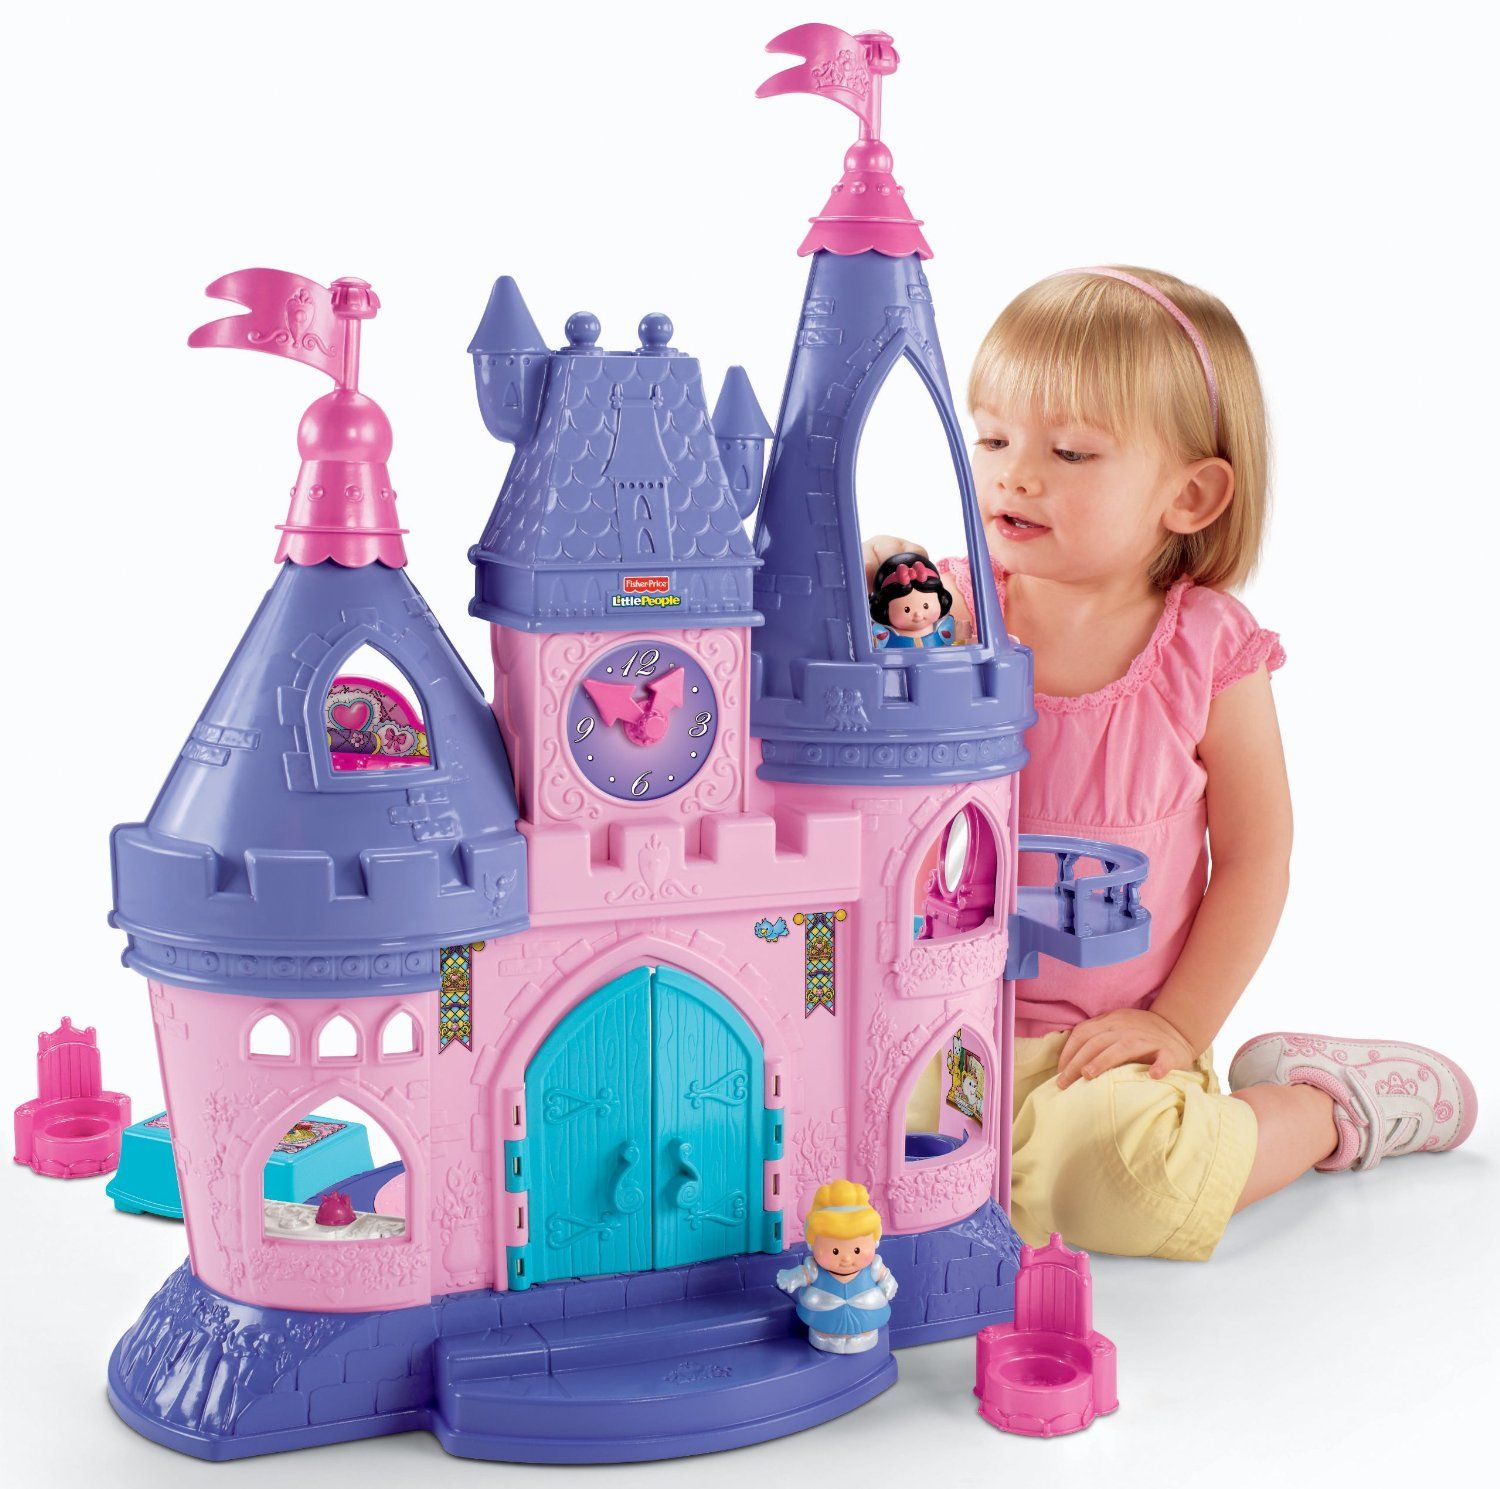 The Best Of Good toys for 2 Year Old Girl Pictures